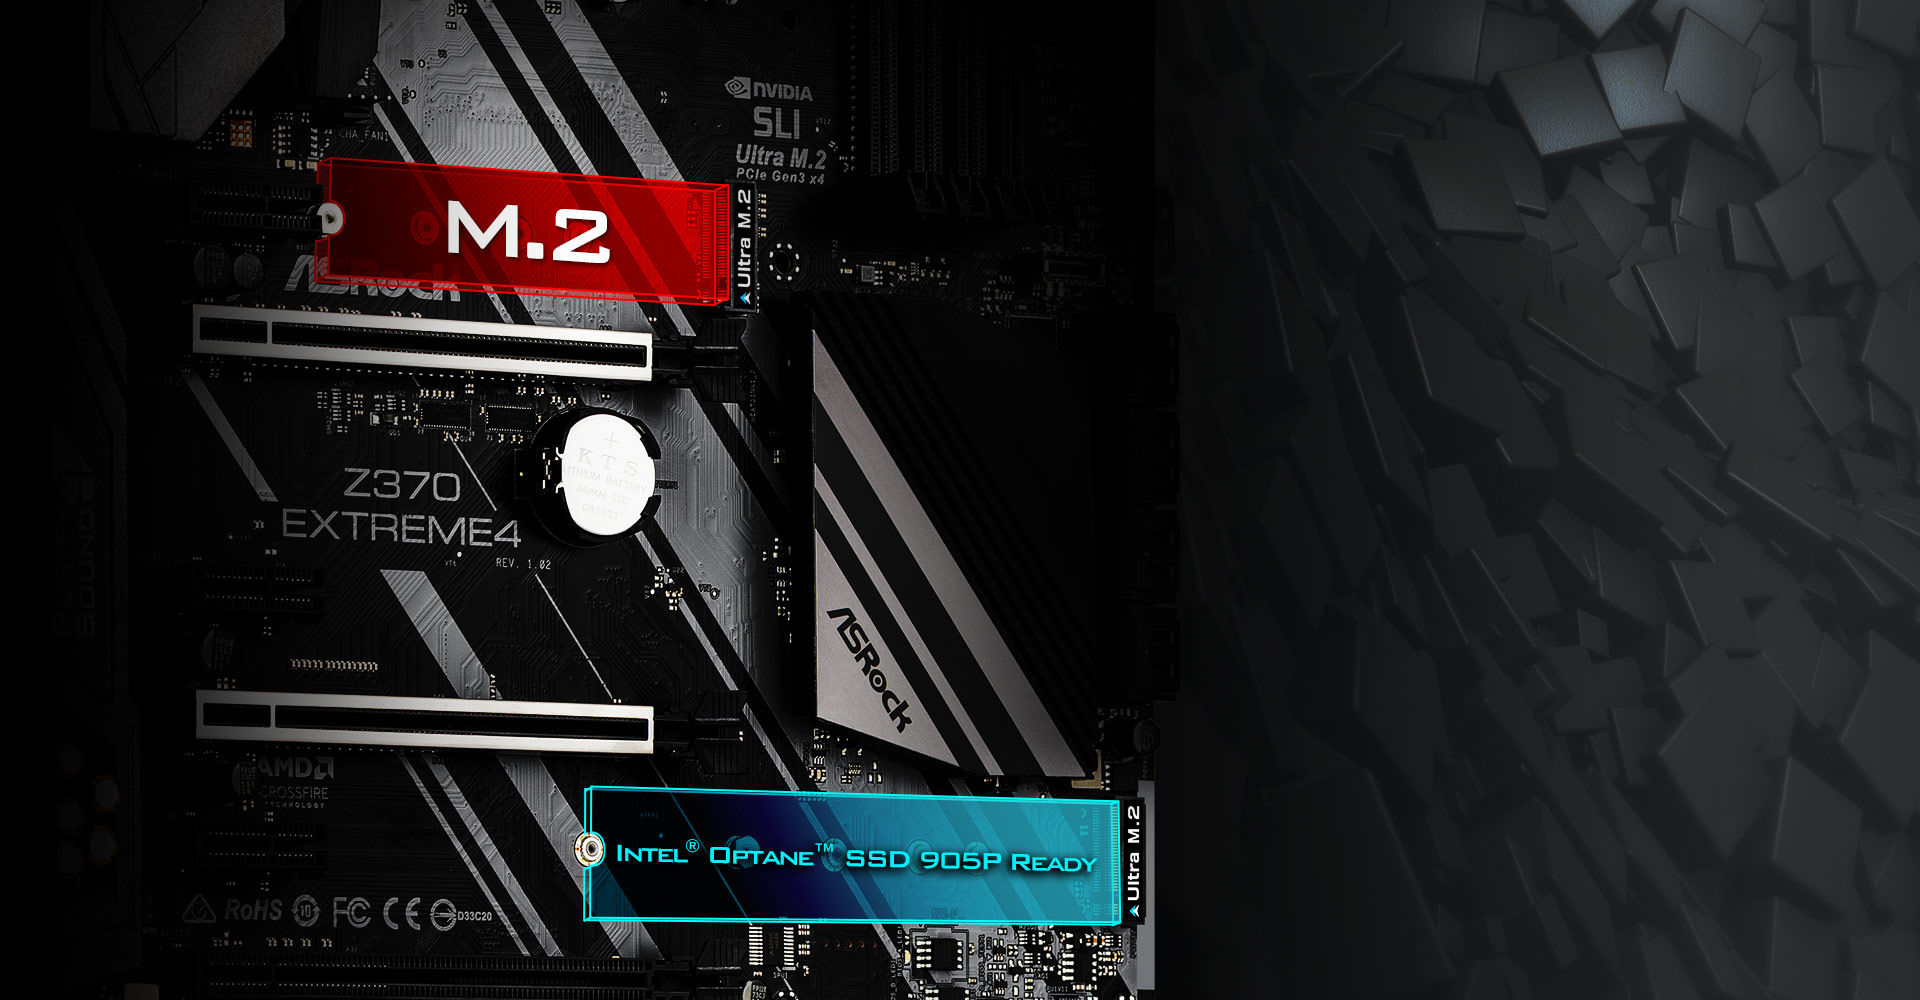 Asrock Z370 Extreme4 Extreme X8 Controller Wiring Diagram Two Of The Worlds Fastest Pcie Gen3 X4 Ultra M2 Slots That Deliver Up To 32gb S Transfer Speed It Also Supports Sata3 6gb Modules